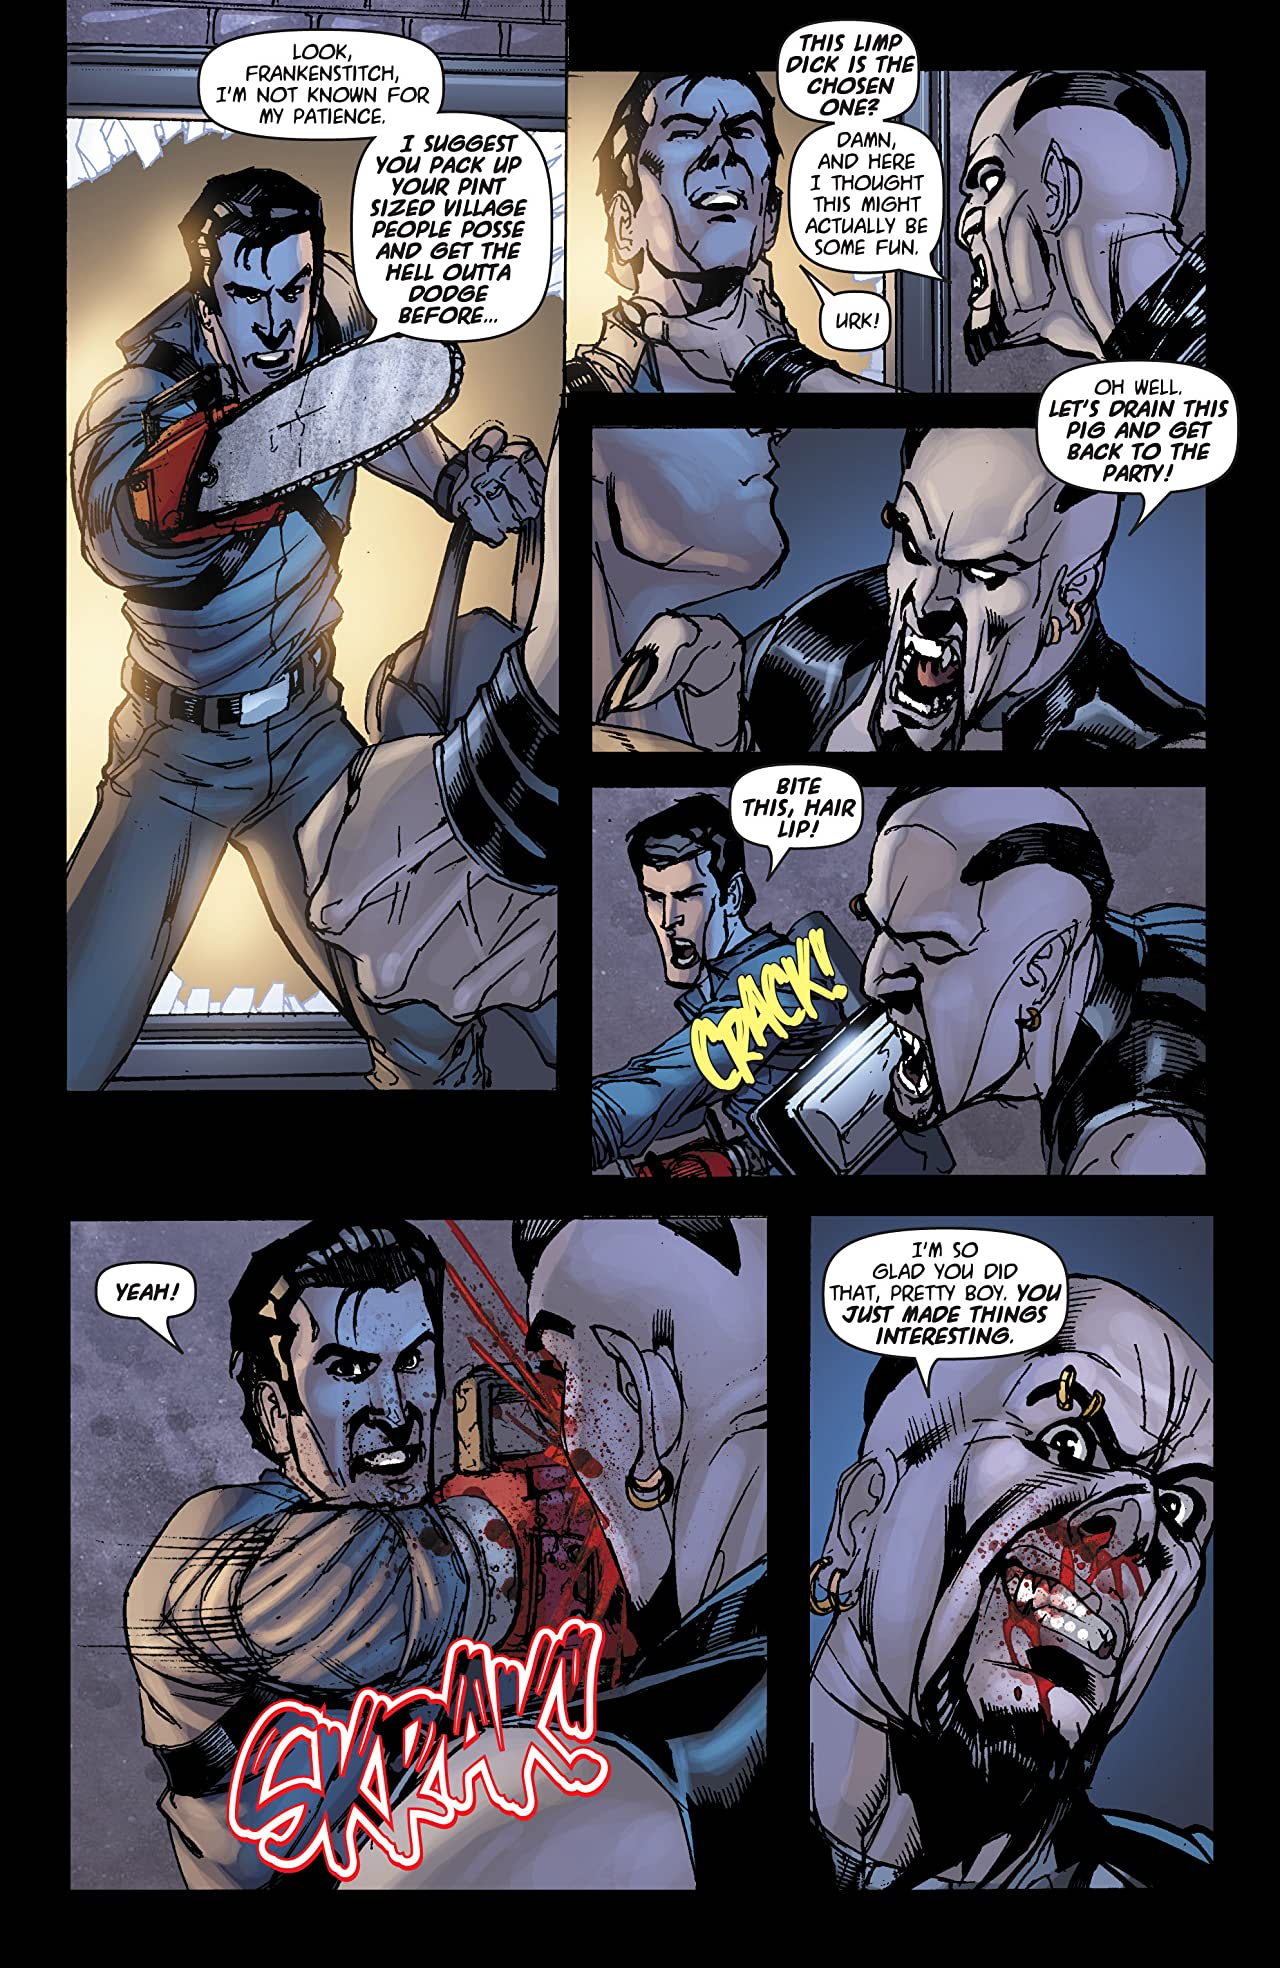 Army of Darkness Vol. 1 #9